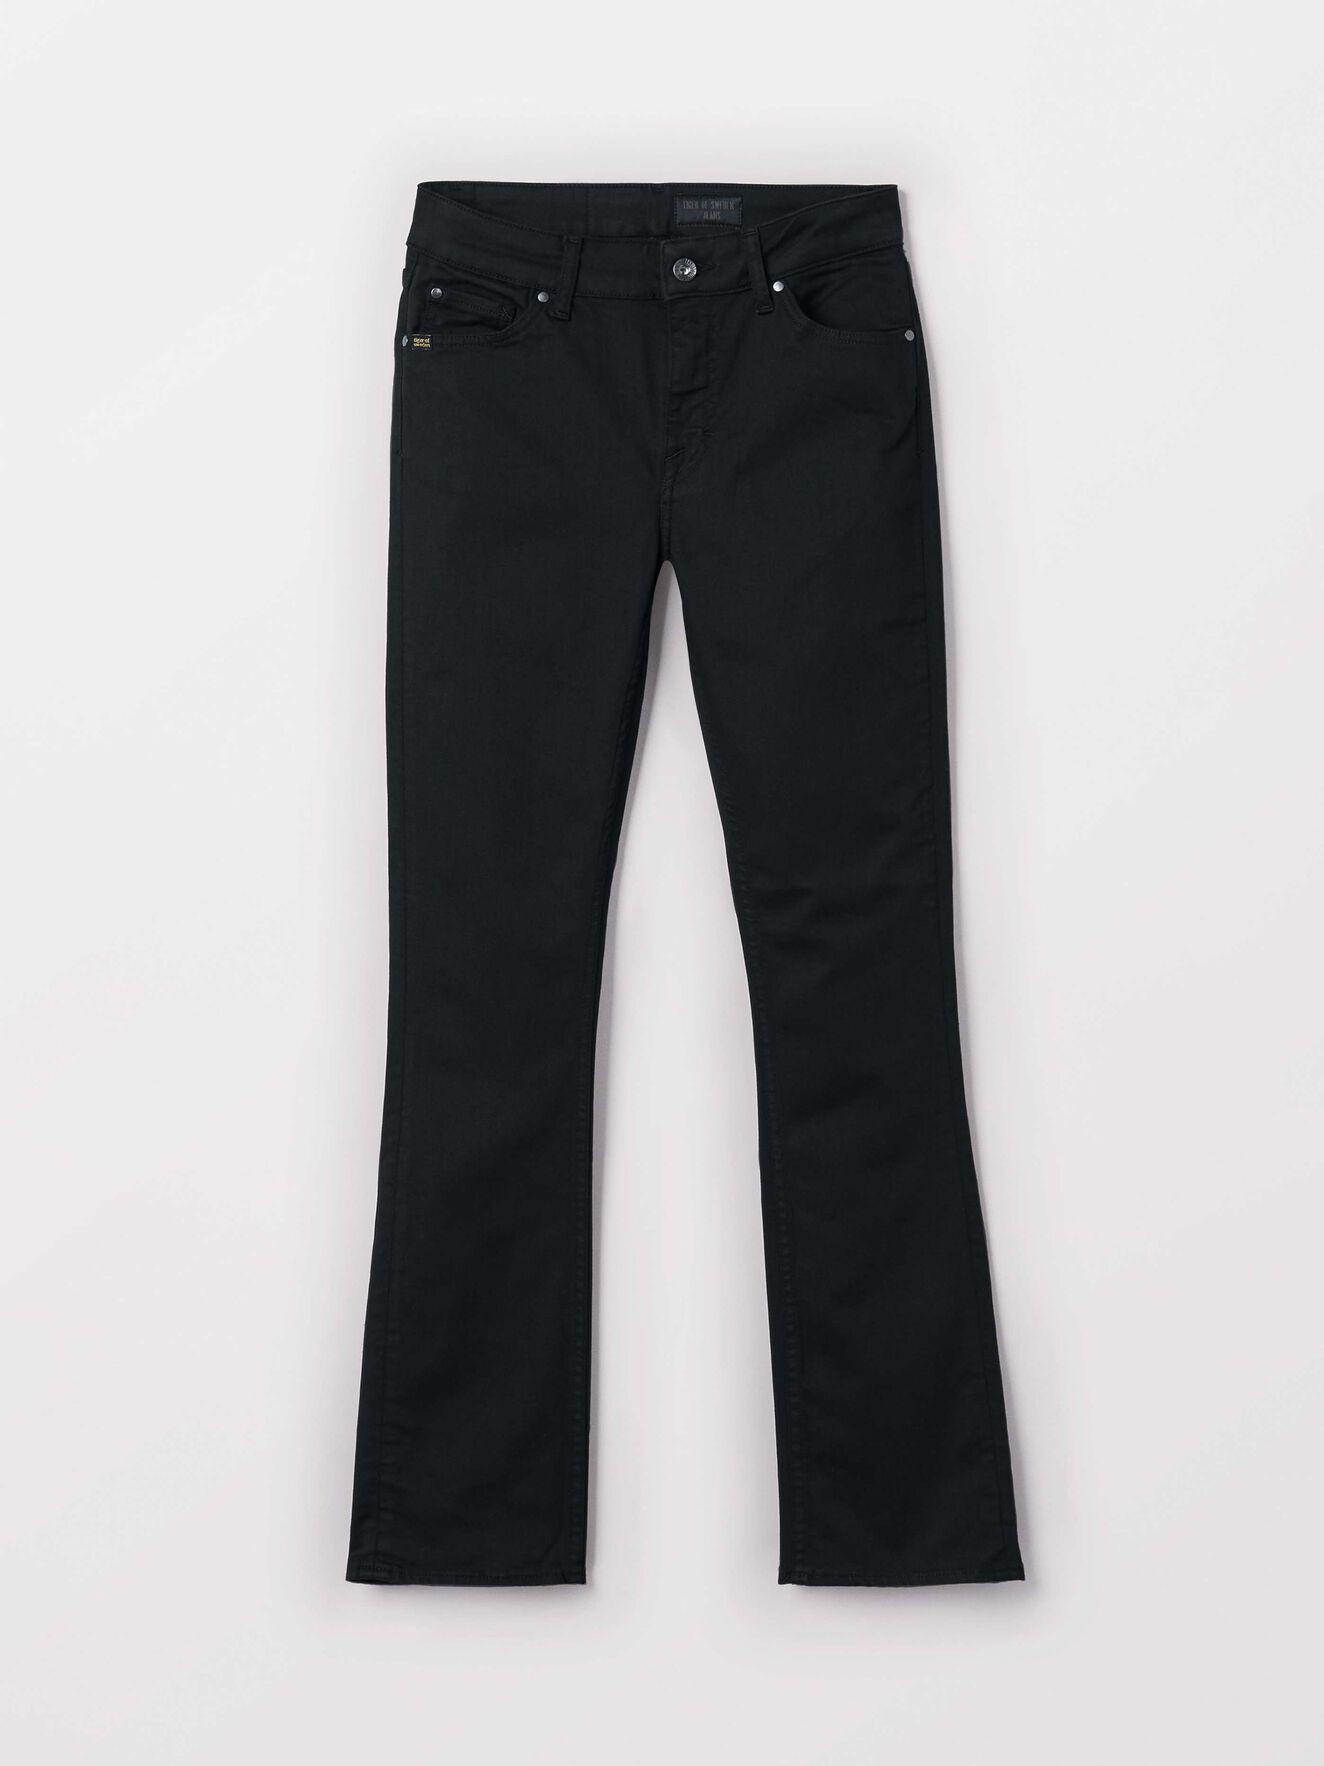 Lora Jeans in Black from Tiger of Sweden